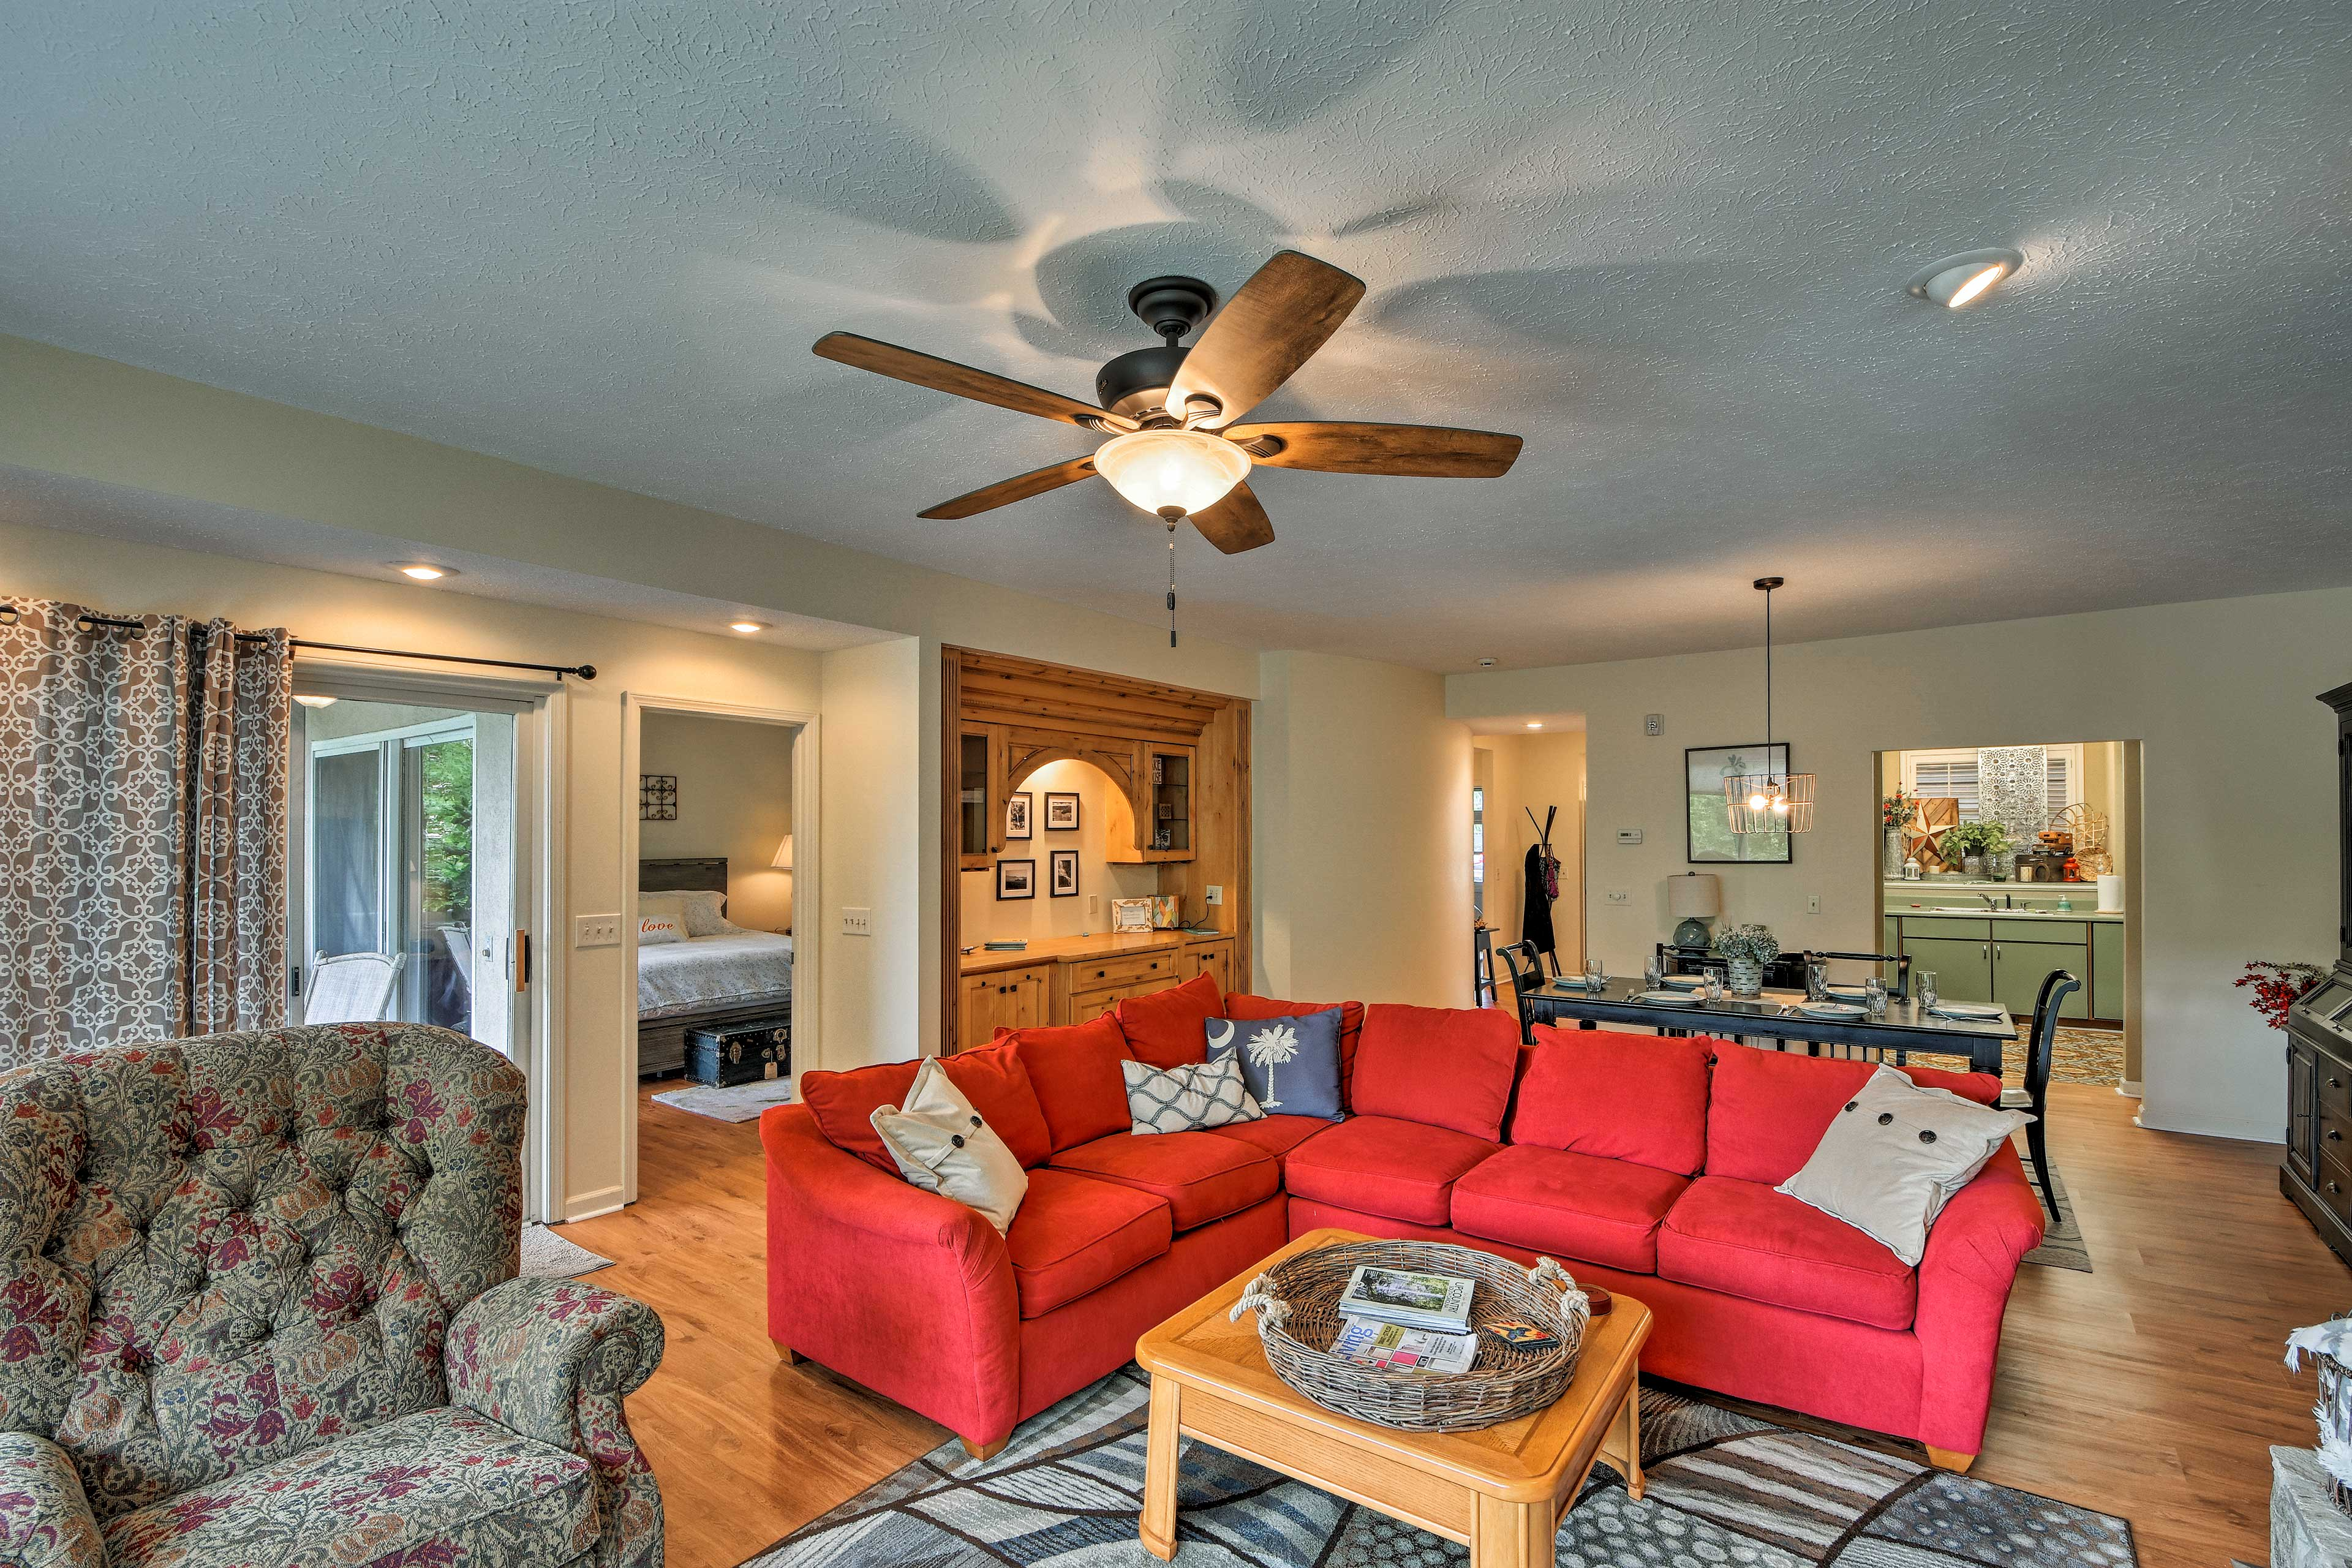 When you're not enjoying the resort amenities, relax in this cozy living room.